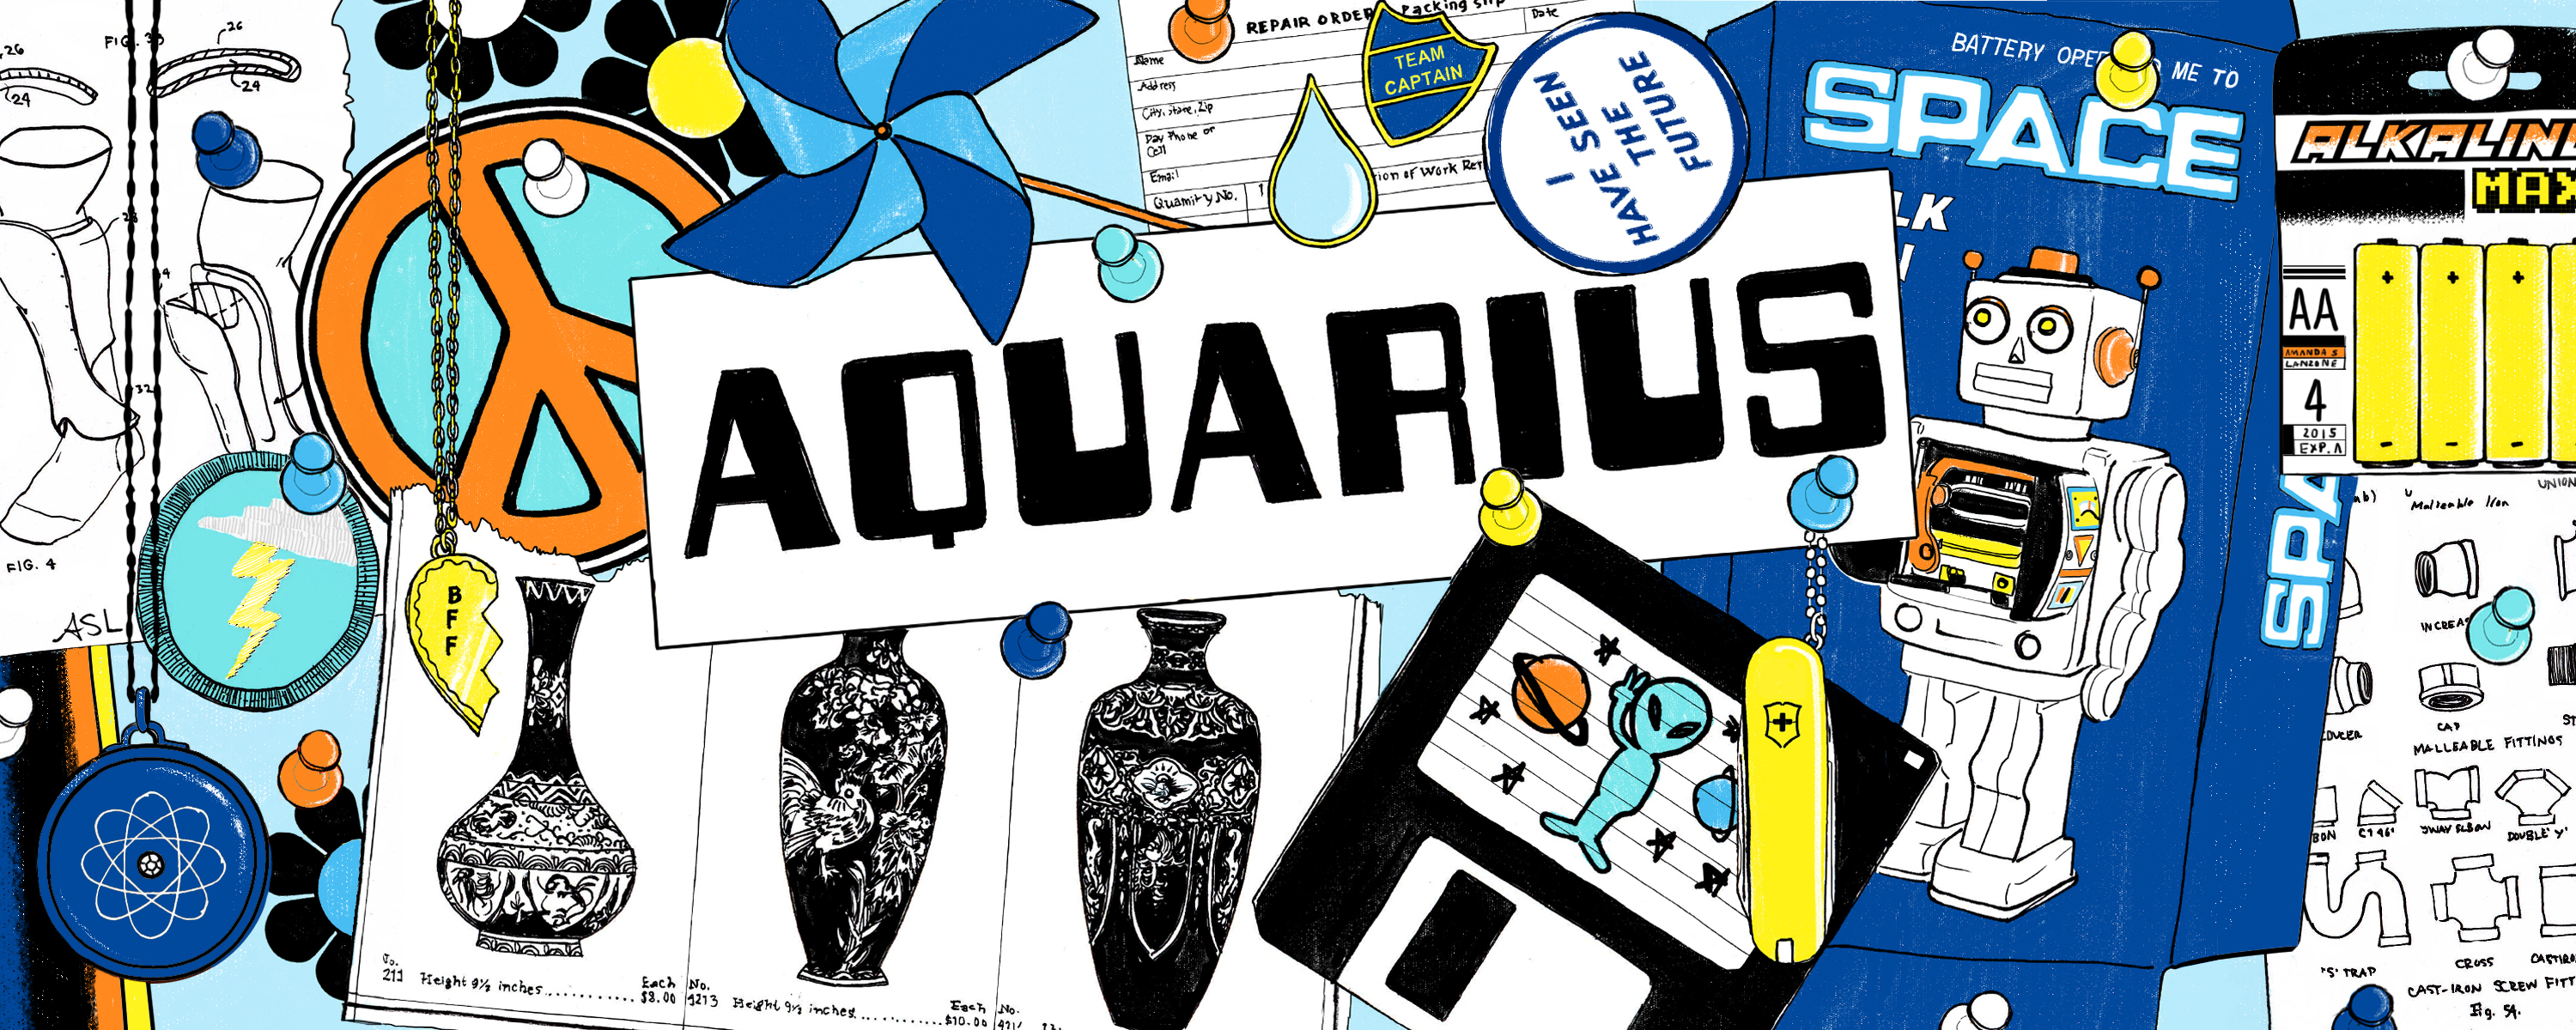 Monthly Horoscope: Aquarius July 2019 - VICE